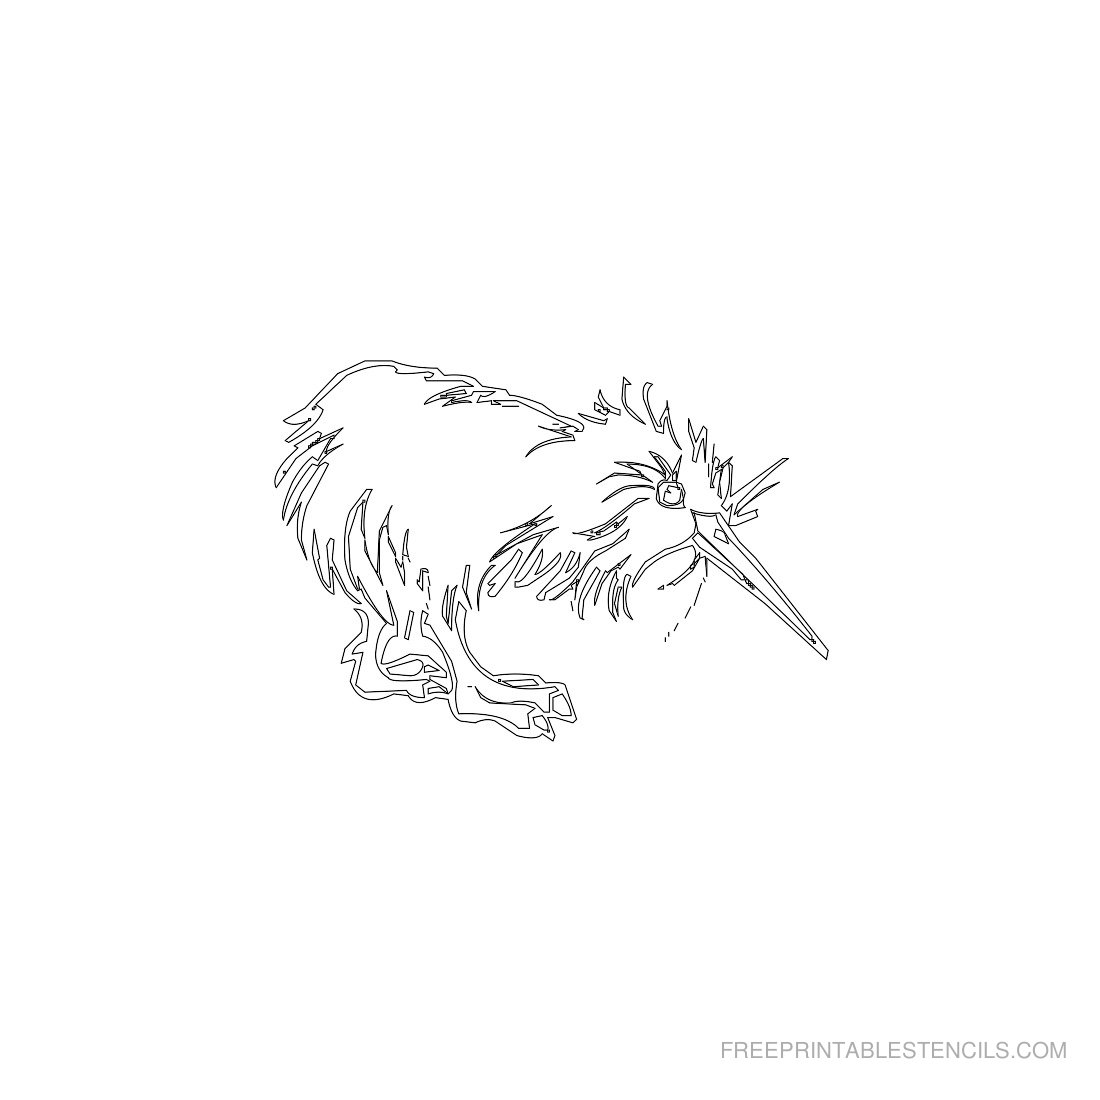 Free Printable Animal Stencil Kiwi Bird